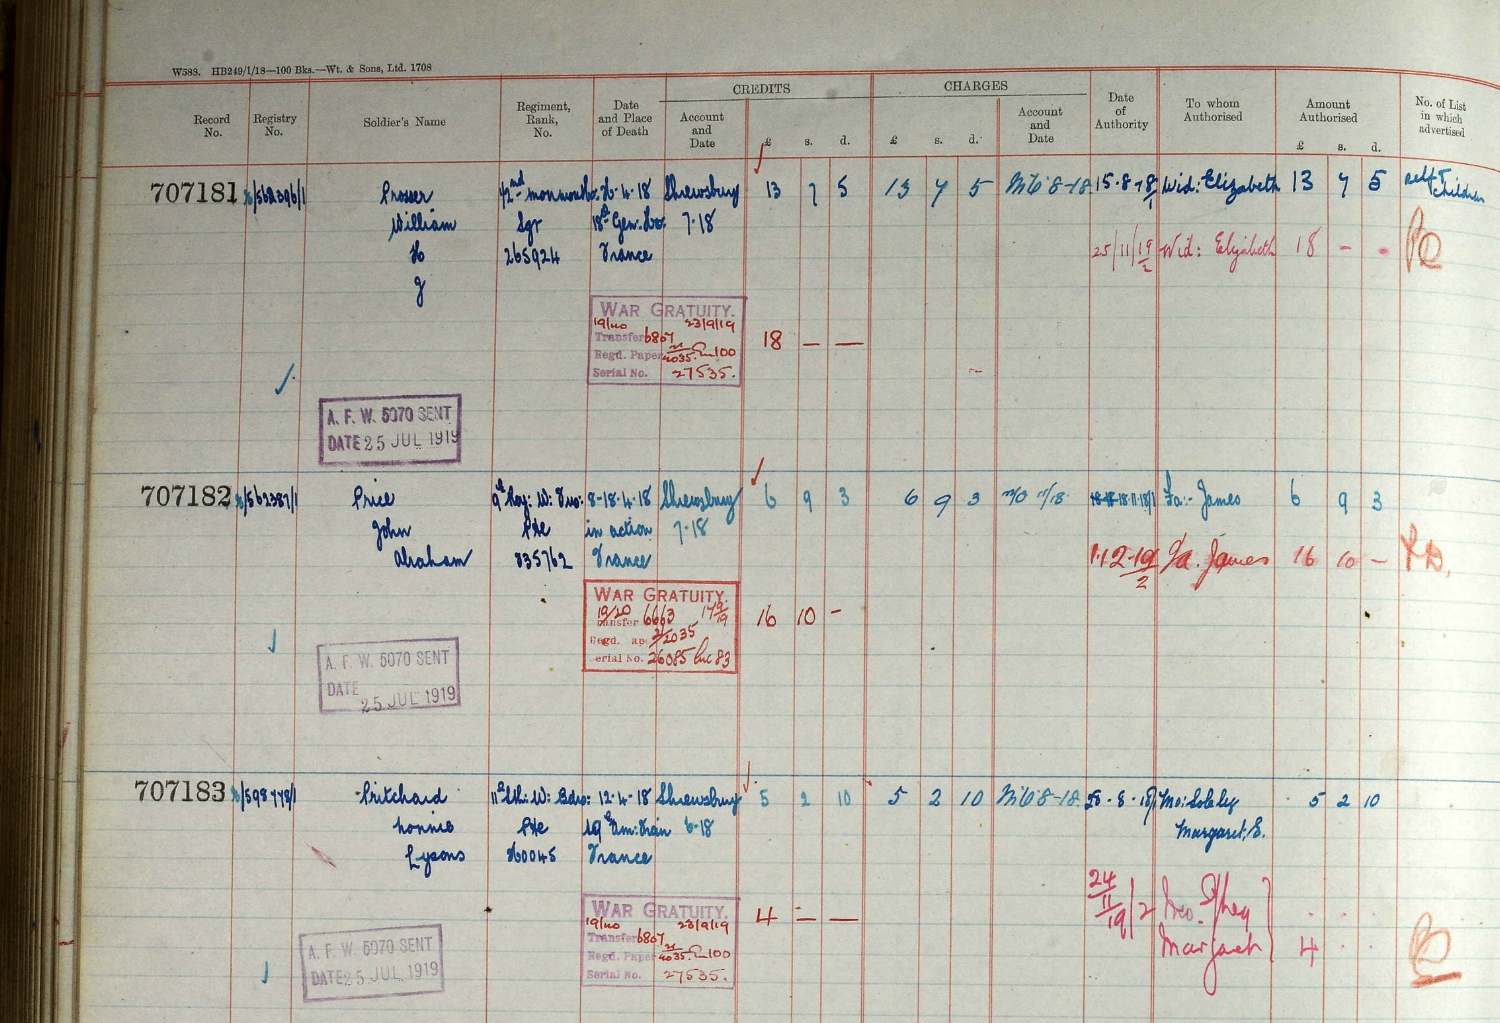 Copy of the entry of 28 August 1918 regarding the War Gratuity payment to Nonnie's mother Margaret Ellen Pritchard {from the National Army Museum Register of Soldiers' Effects}